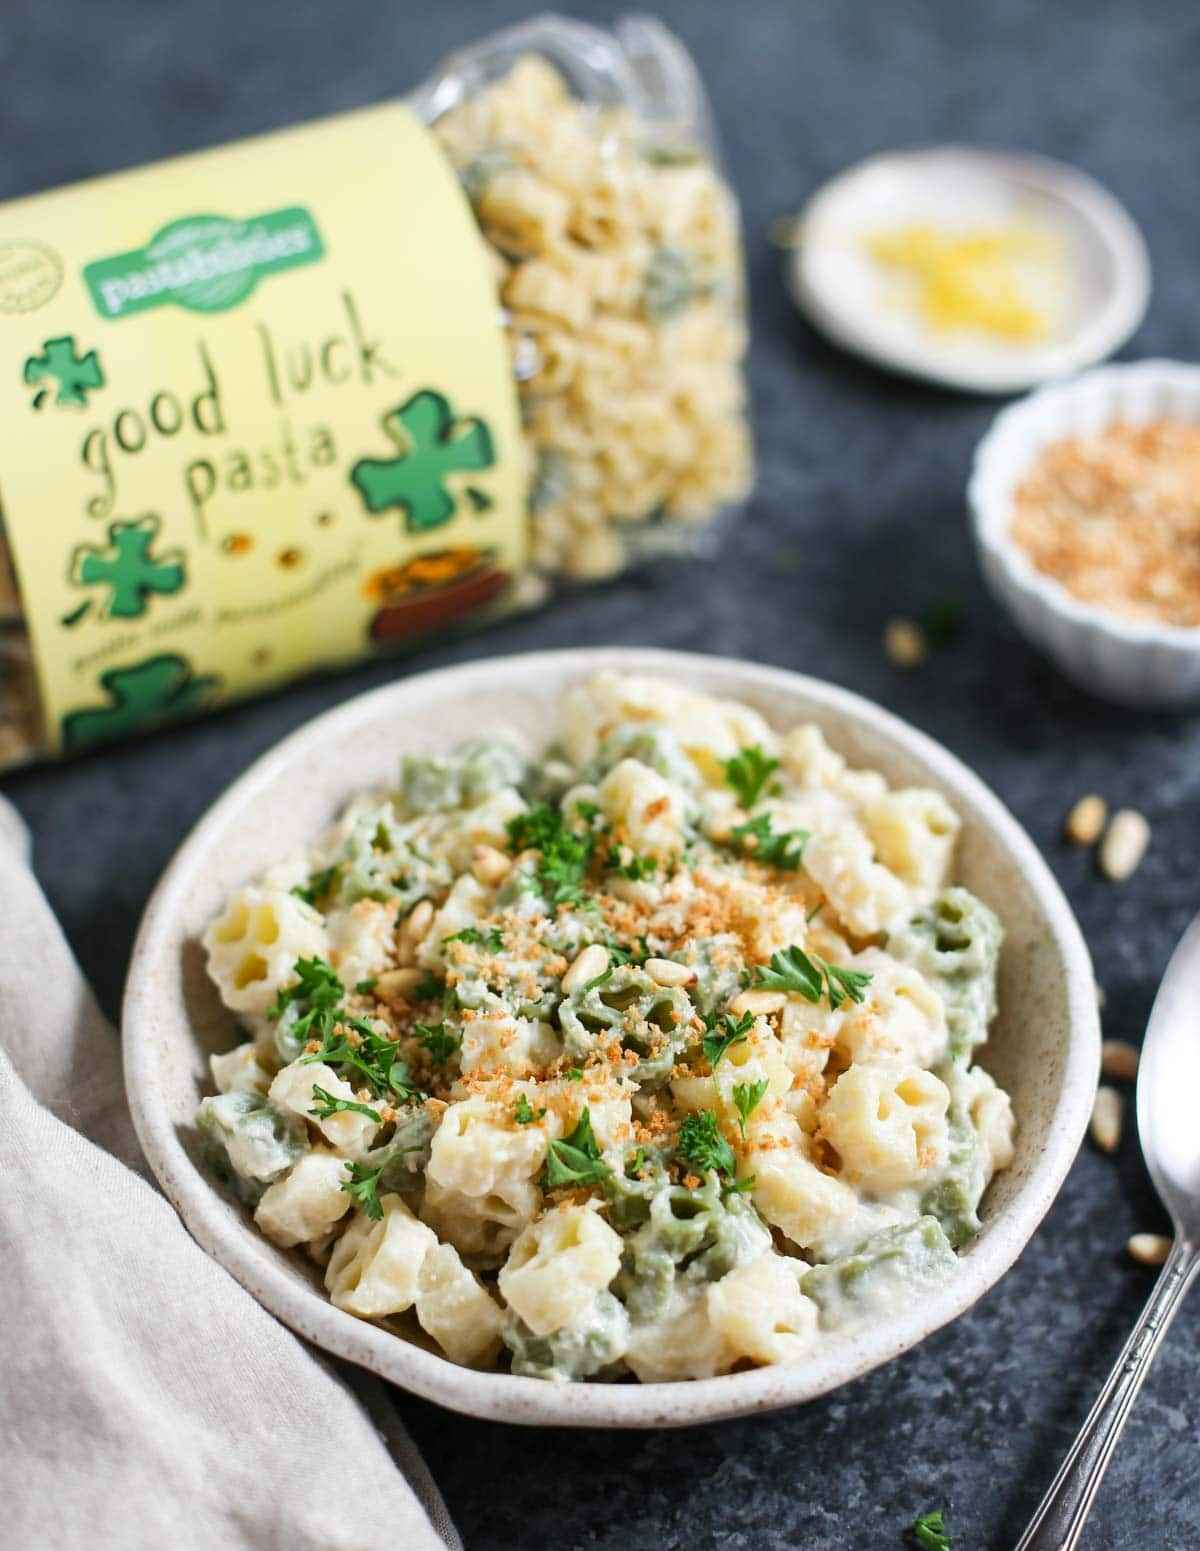 Vegan Cauliflower Alfredo with Good Luck Pasta